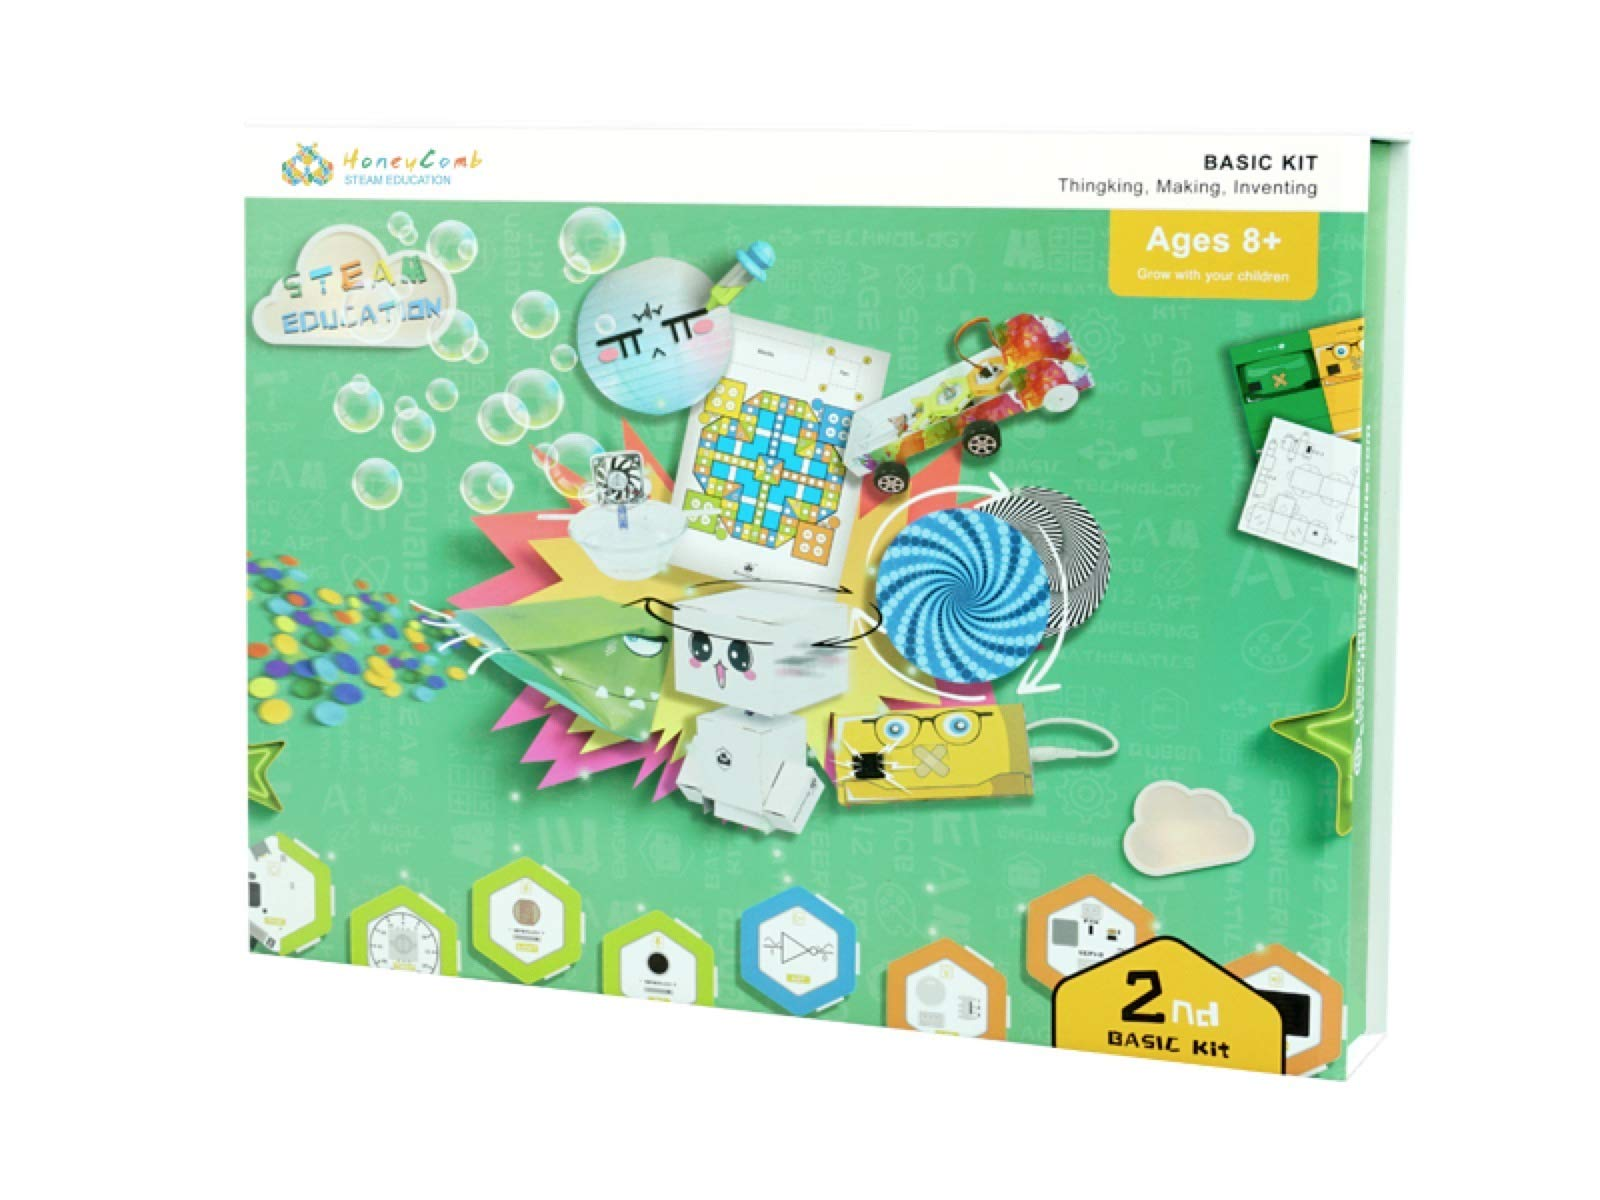 HoneyComb Basic Kit | Over 100 STEM Projects | Programming Coding Logic | Snap magnetic connection | Age 8 and up | Unlimited Fun | No Experience Needed| A Great STEM Toy for Both Boys and Girls!